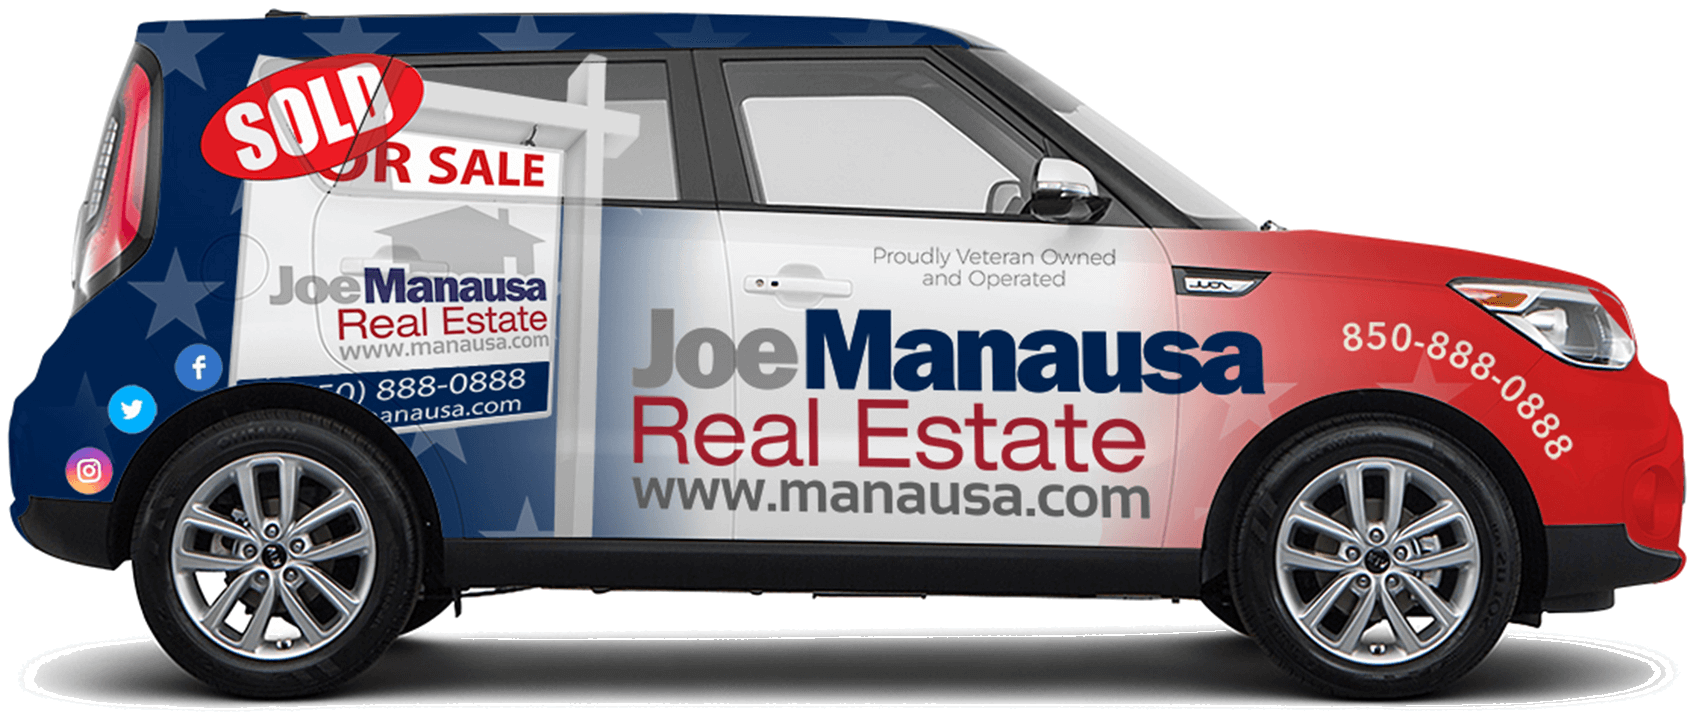 Joe Manausa Real Estate, a growing brokerage company headquartered in Tallahassee, Florida, is changing the local real estate market and adding high paying, sustainable jobs along the way.